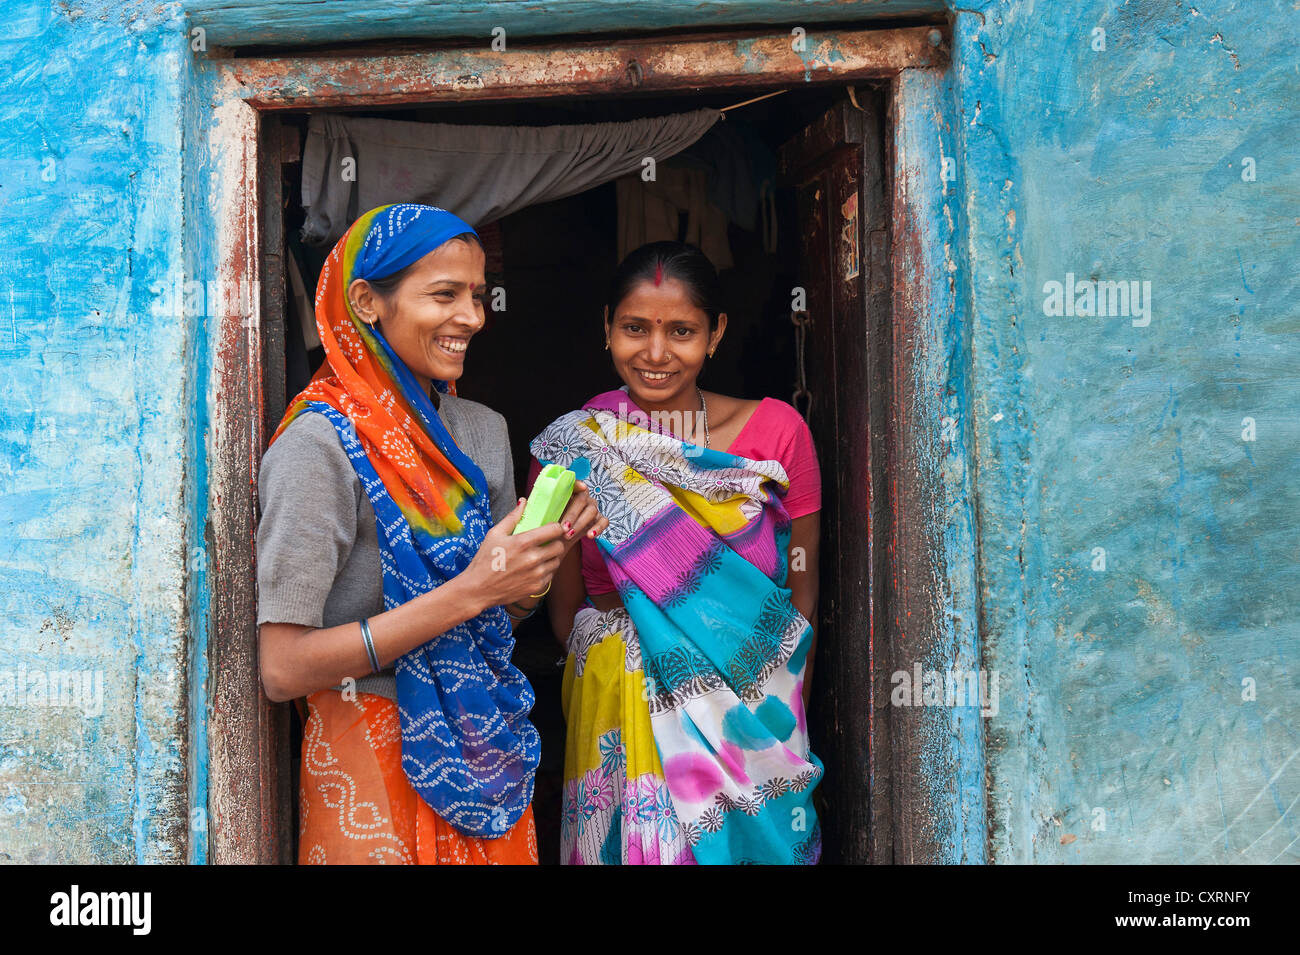 Deux smiling women in a doorway, Varanasi, Benares ou Kashi, Uttar Pradesh, Inde, Asie Photo Stock